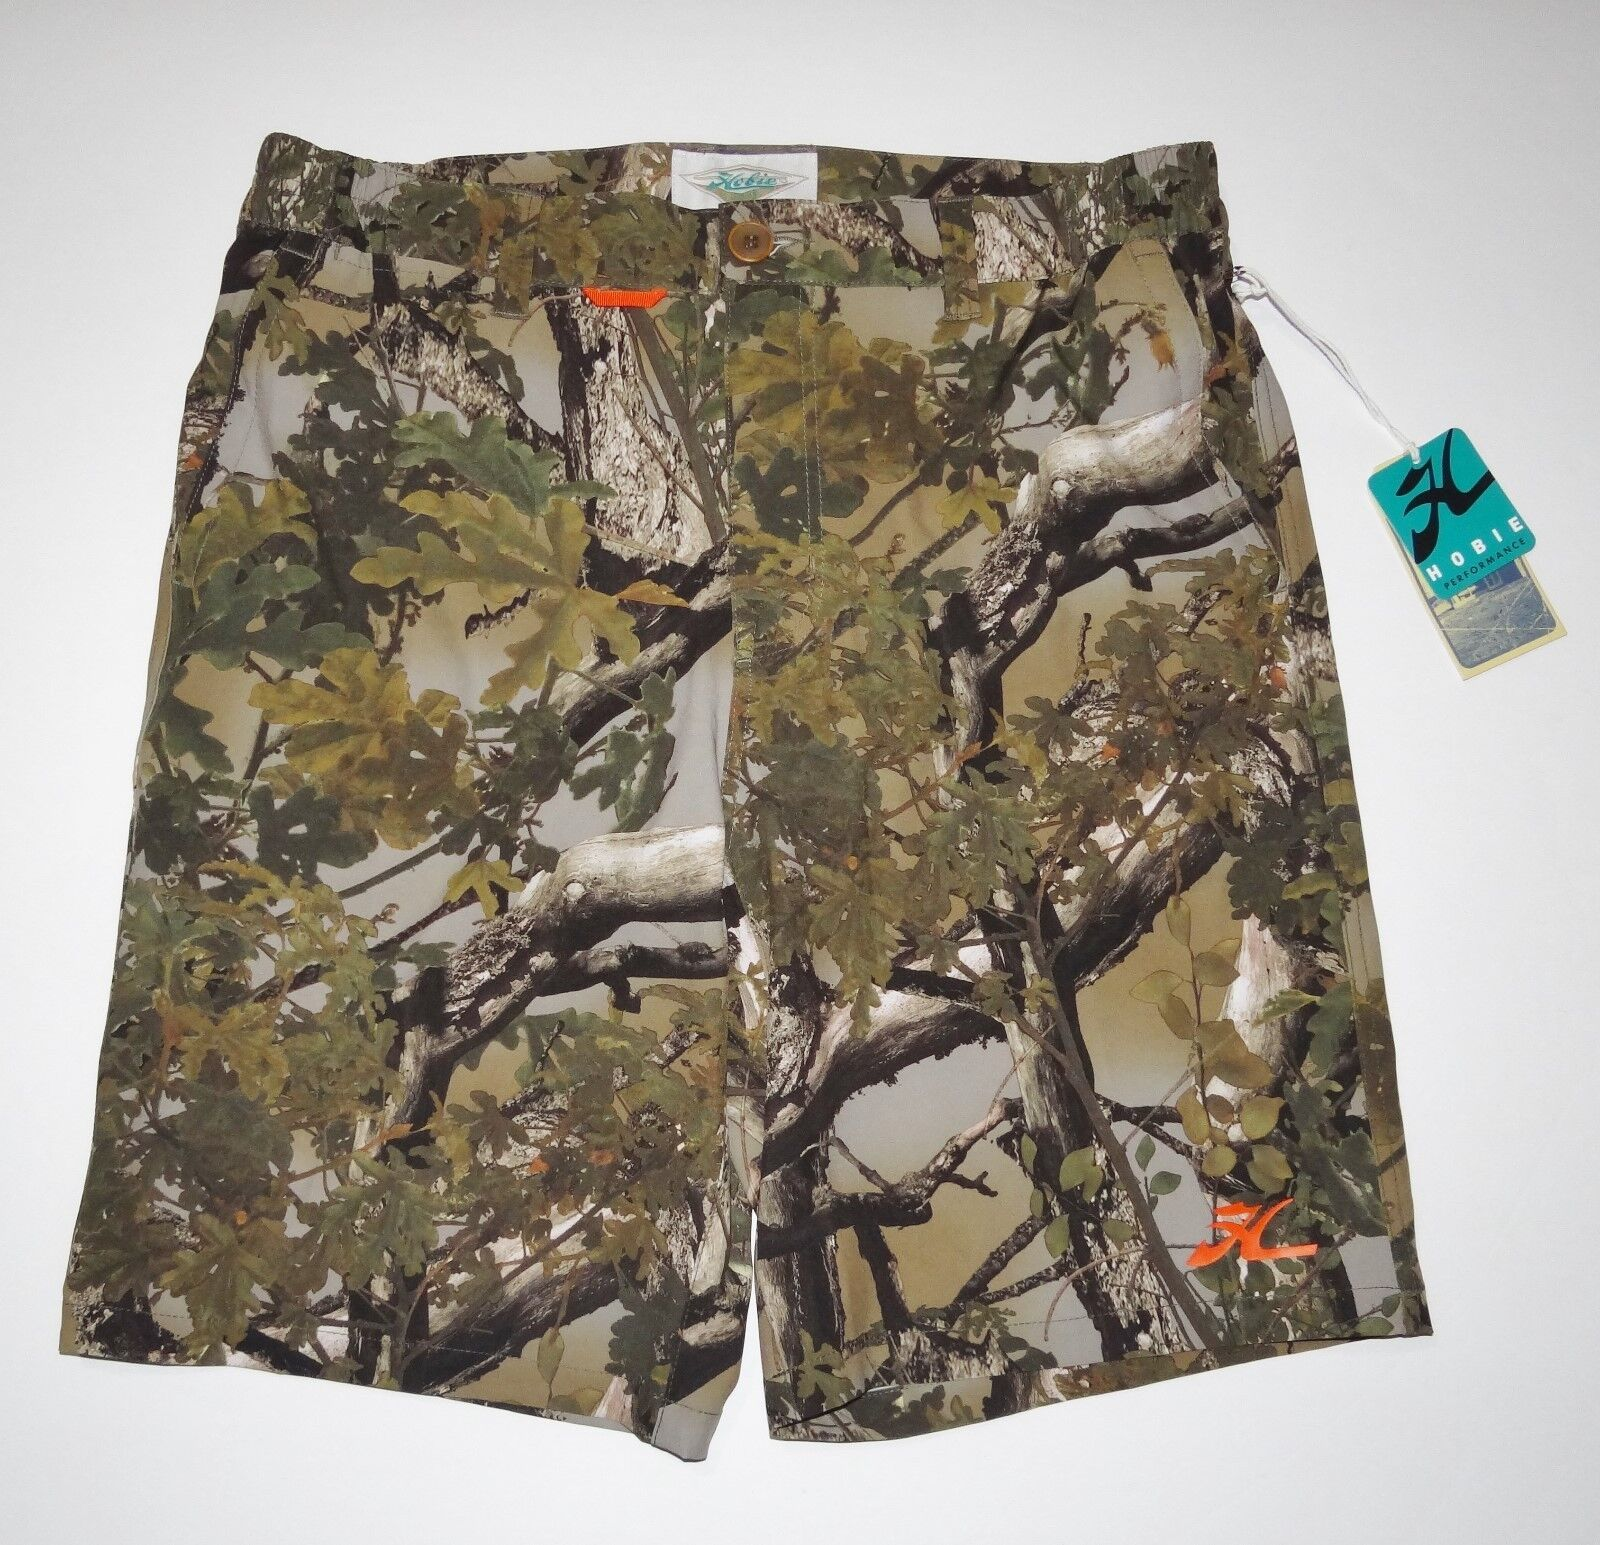 349f77bcc00d0 New Hobie By Hurley Expedition Performance UPF 40 Walk Shorts Size ...